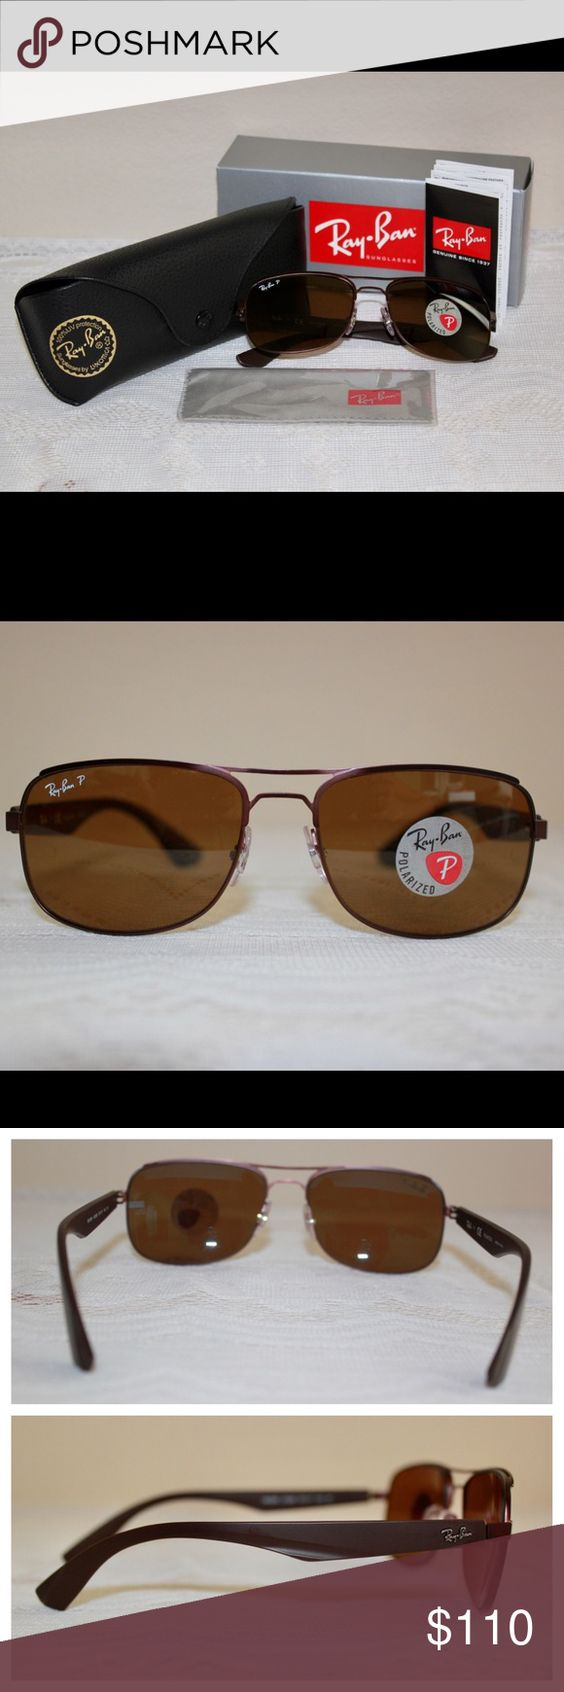 5705a3c44e9 Ray-Ban Men s Brown Polarized Classic style   RB3524 012 83  UPC